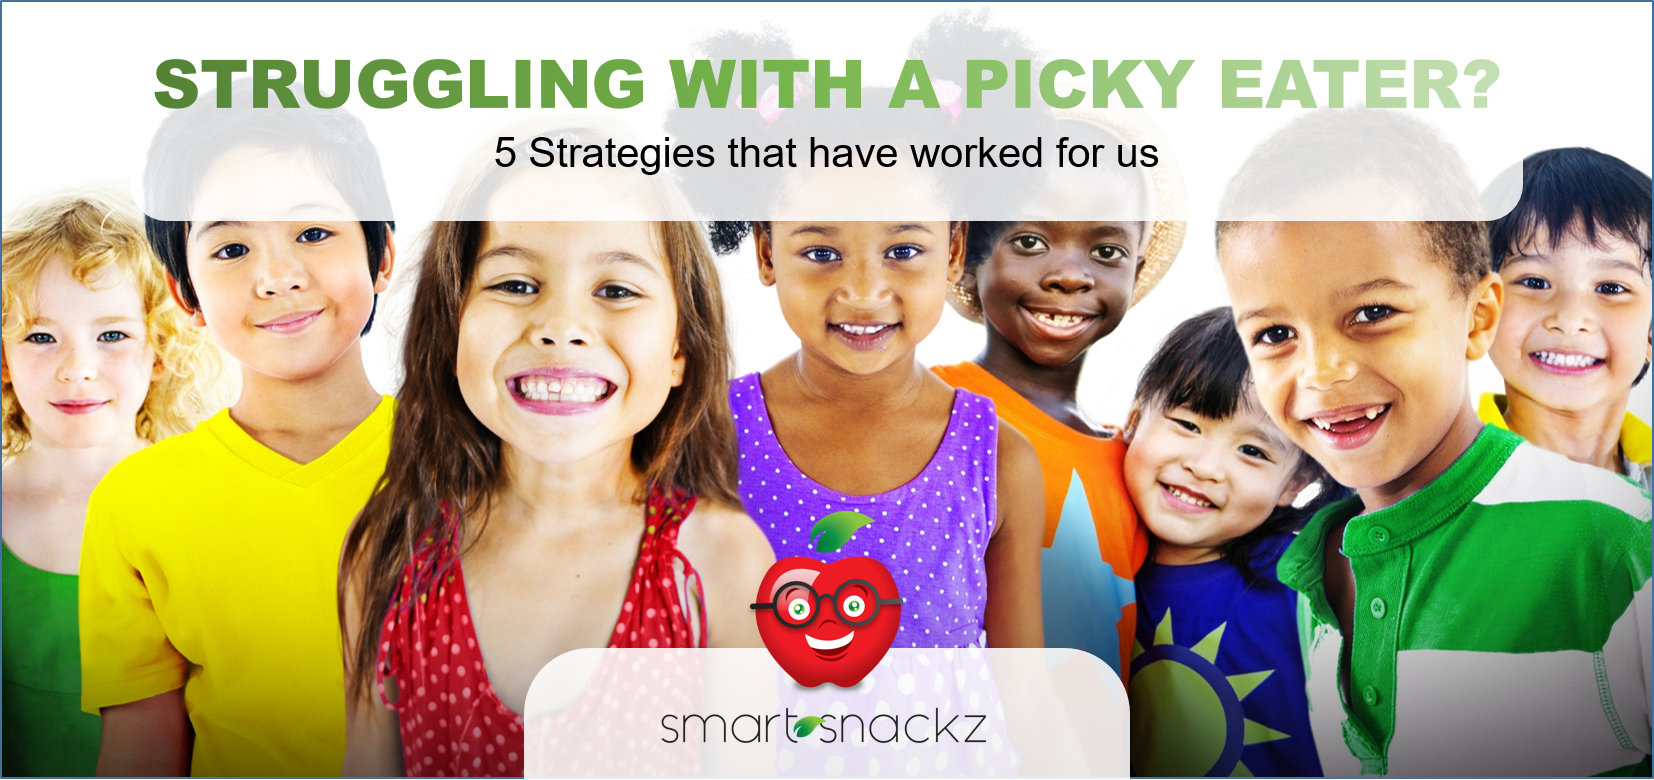 Struggling with picky eaters? 5 strategies that have worked for us